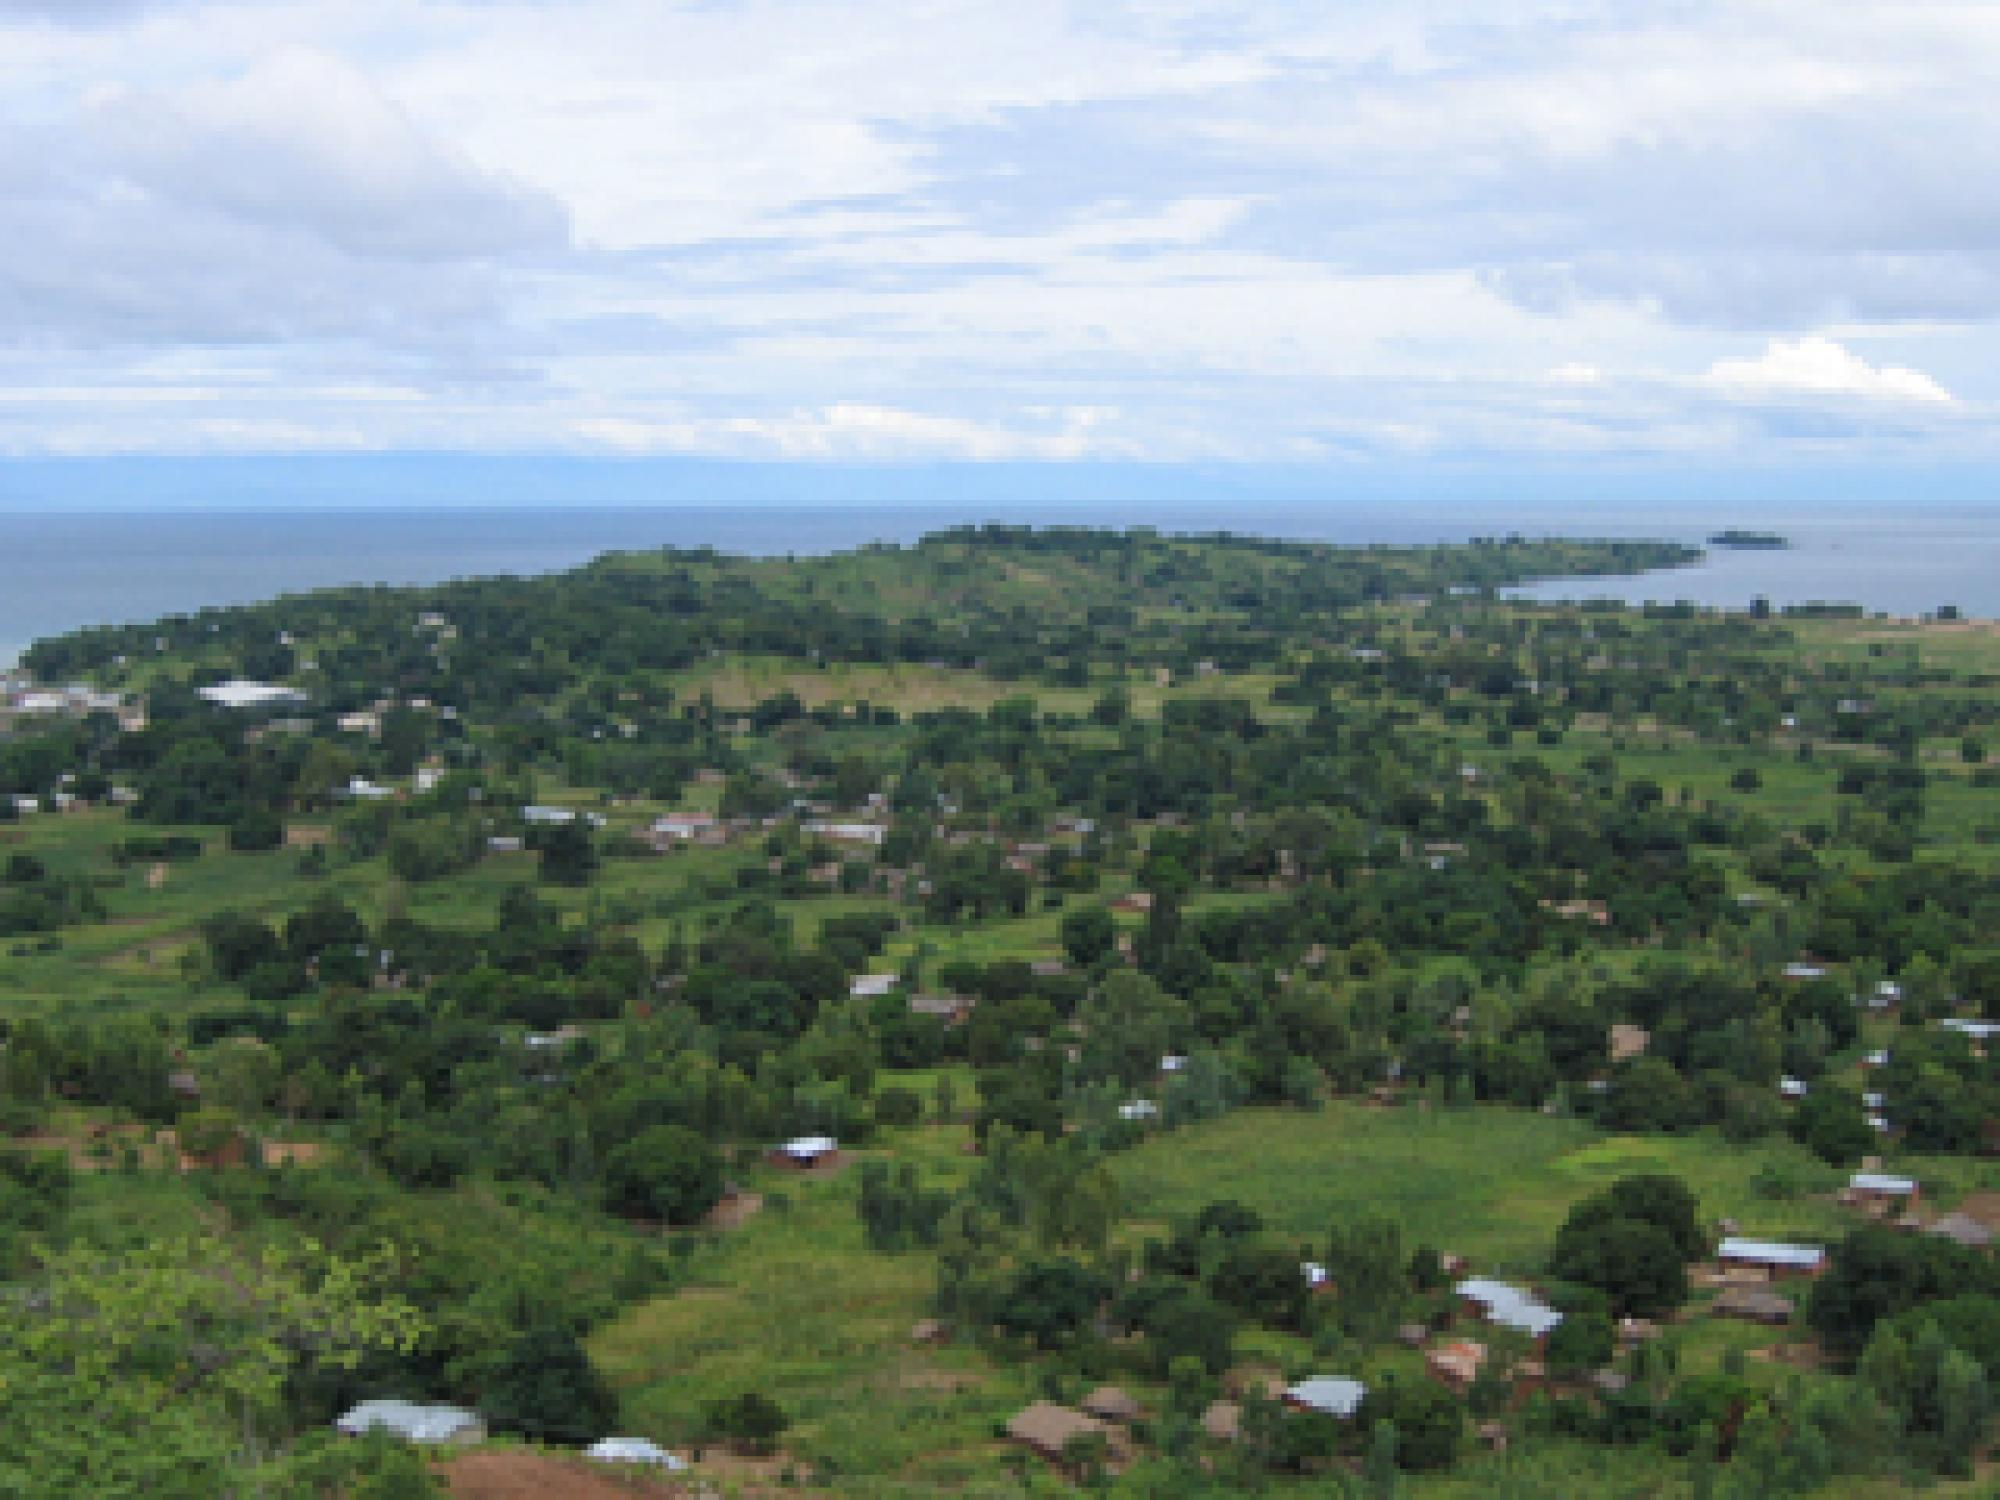 Lake Malawi, one of Africa's Great Lakes, is at 2,316 feet  one of the deepest lakes in the world. Although the lake is surrounded by lush tropical vegetation now, during the megadrought period 135,000 to 90,000 years ago, the region would have been semi